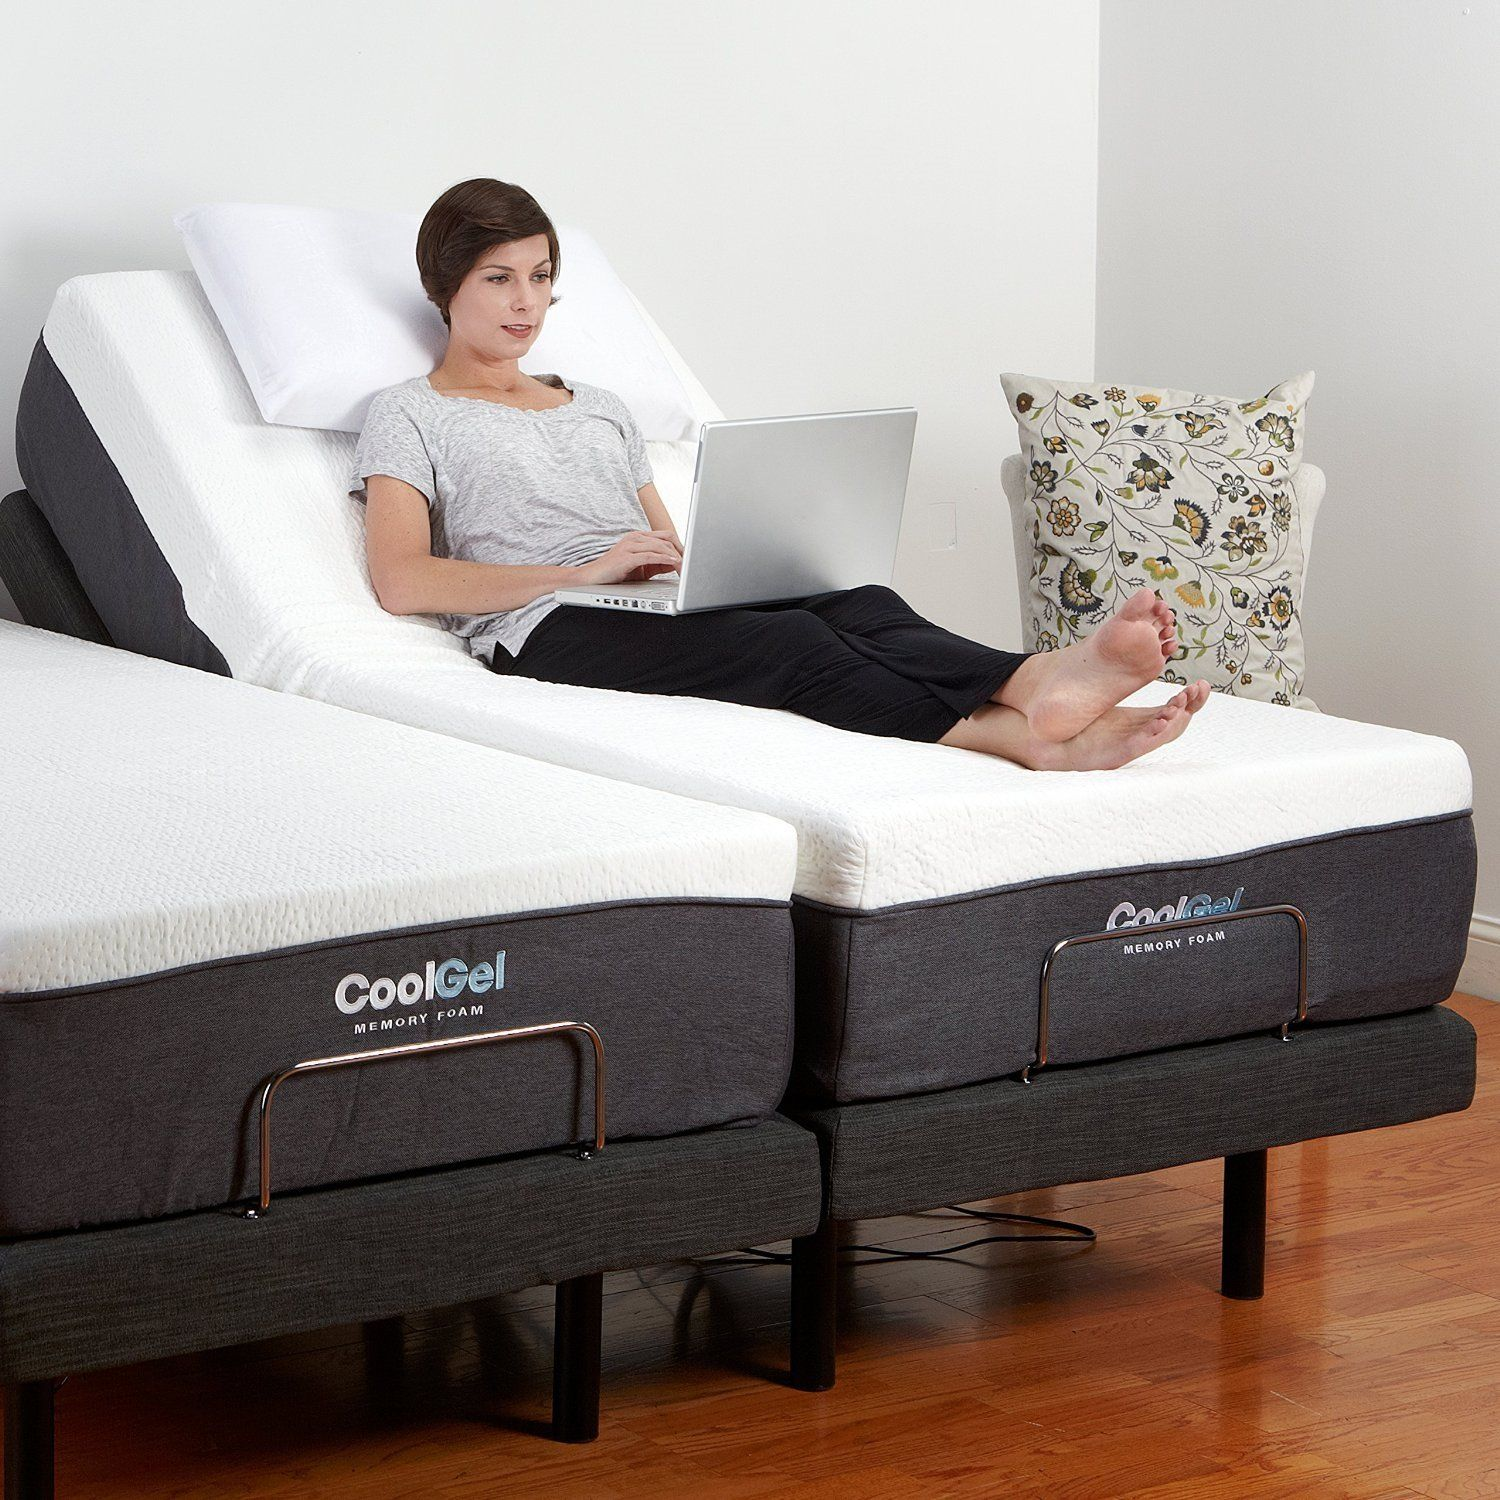 This Queen size Adjustable Bed Base with Massage and